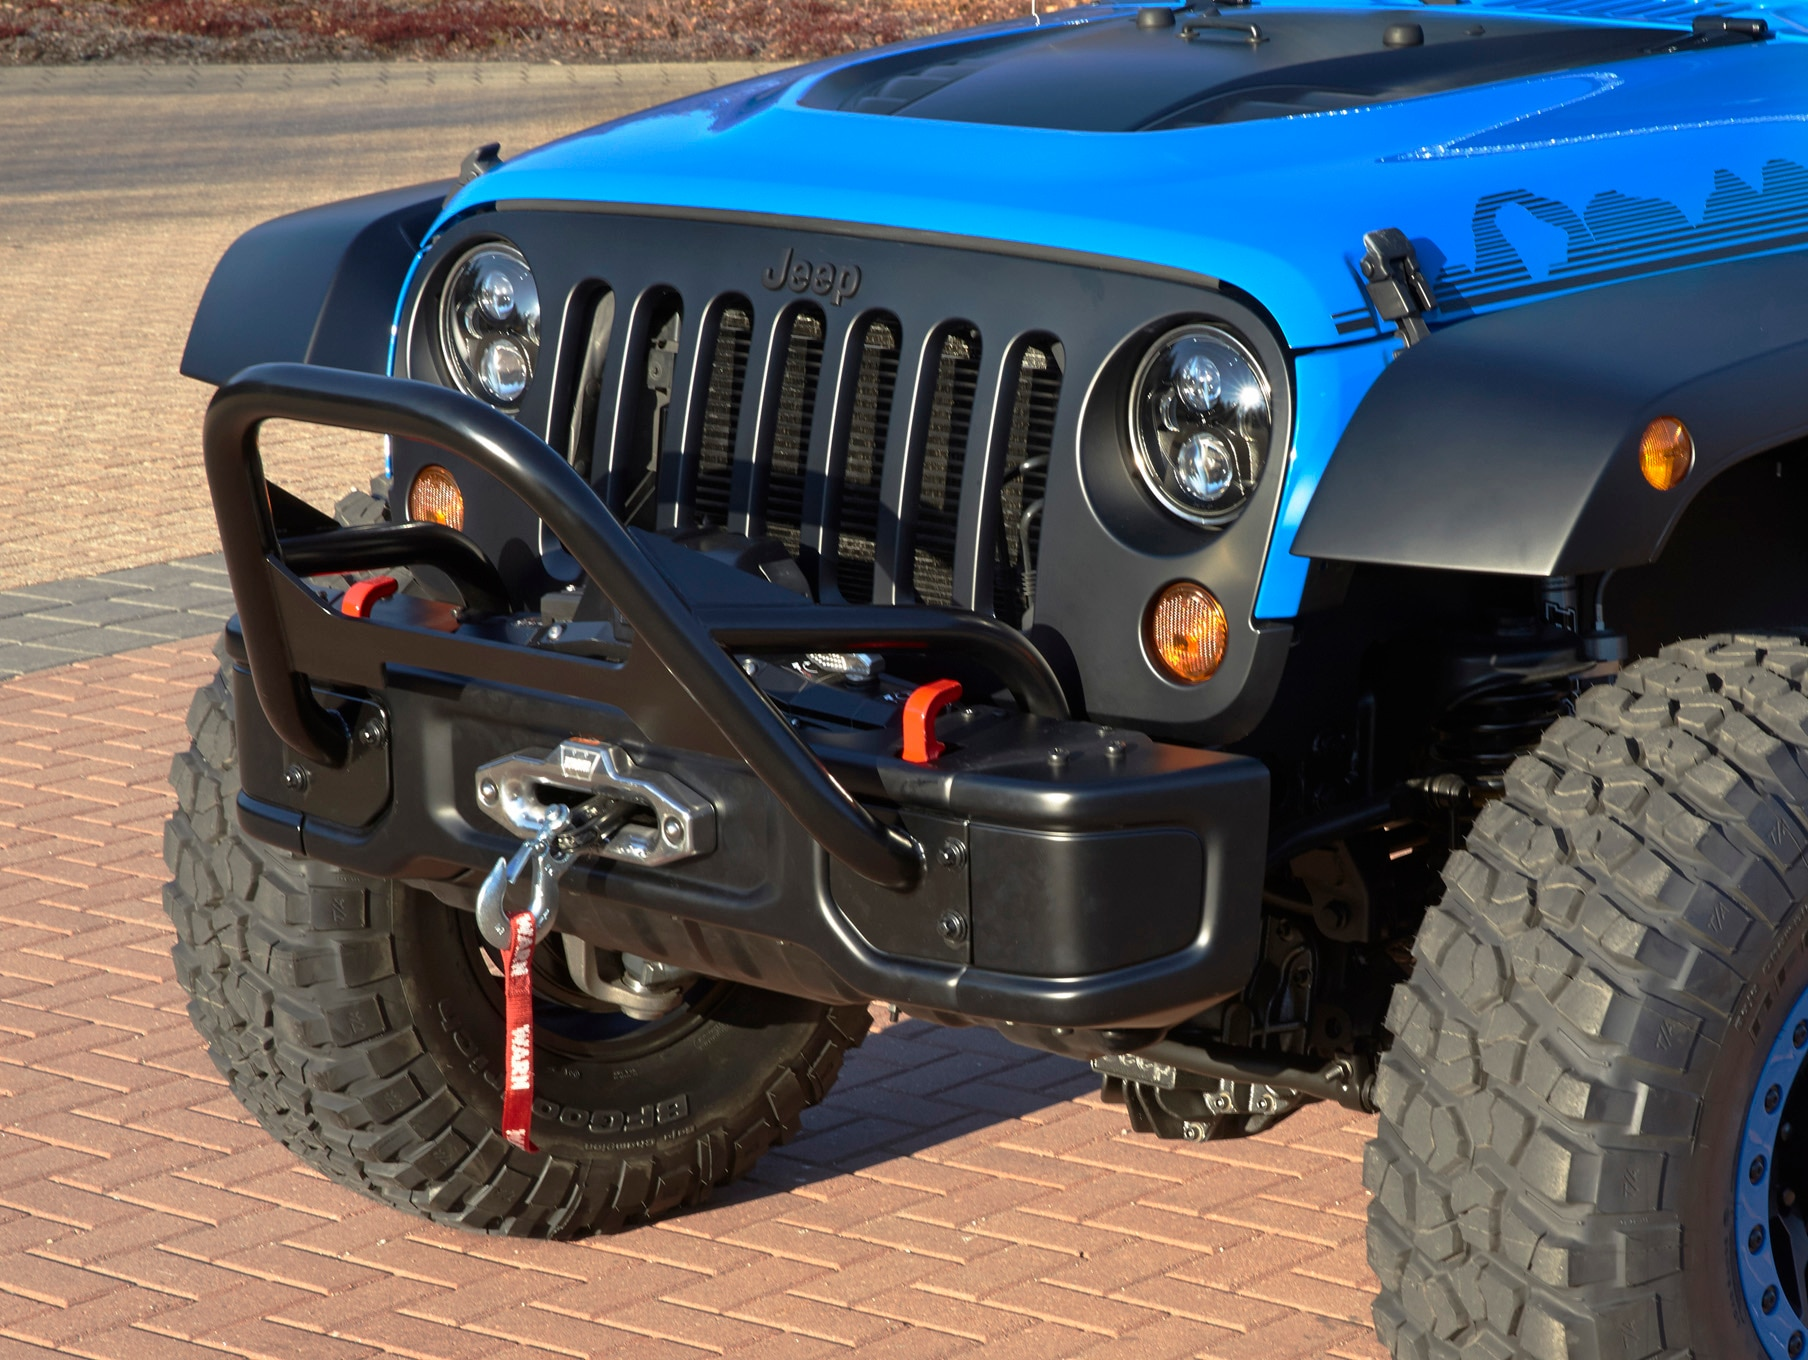 Jeep Wrangler Maximum Performance Concept front grille